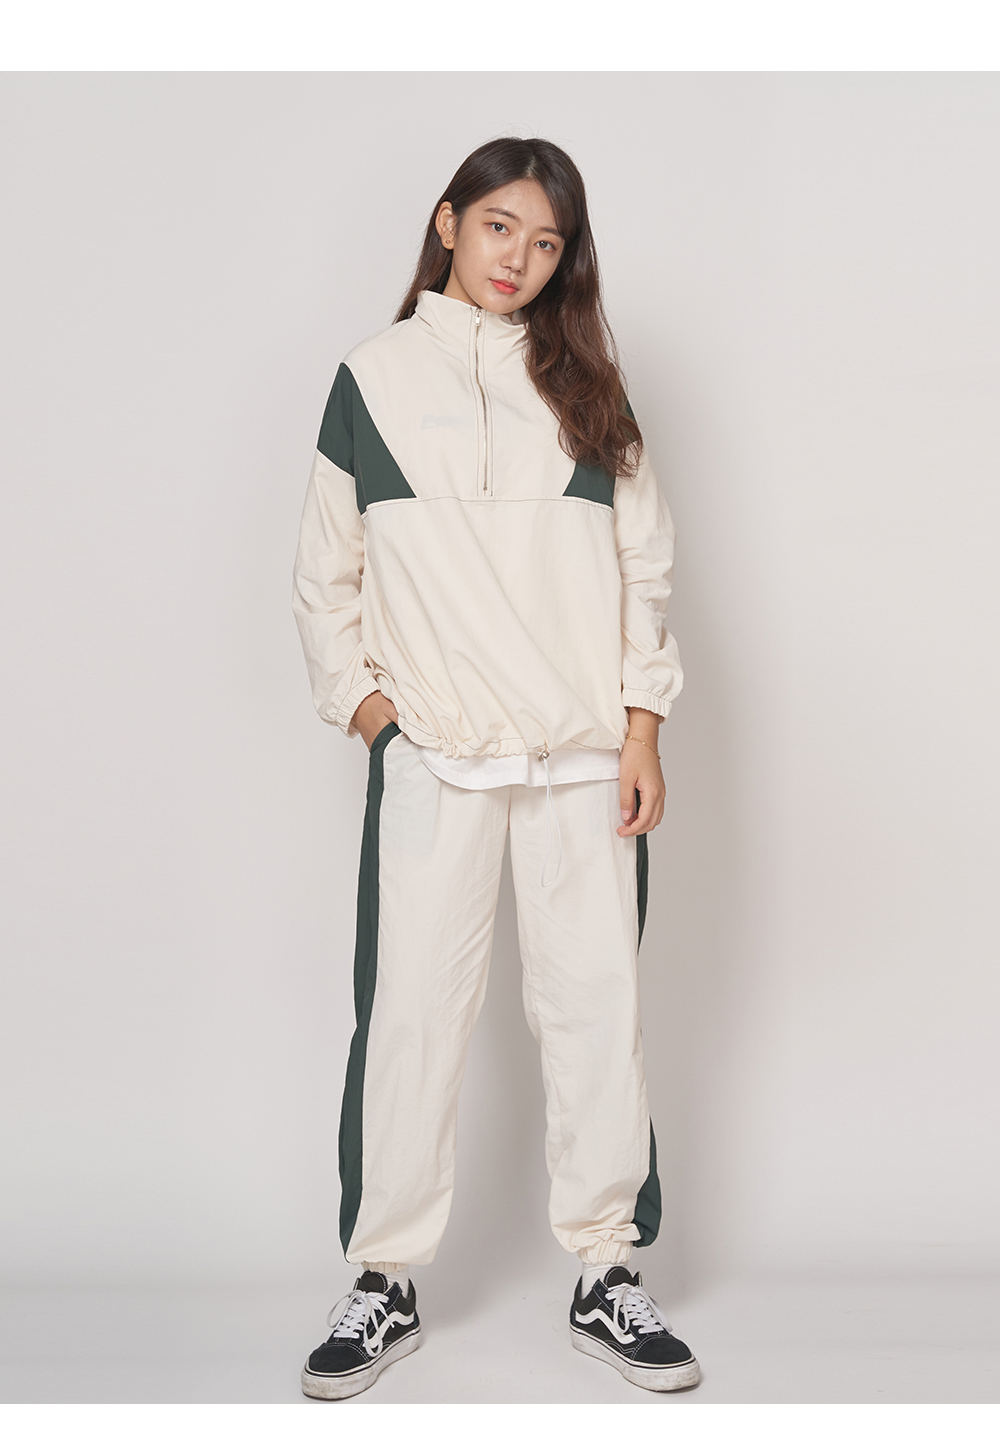 Color Matching Slanted Jurianorak Pants Big Size 28-36 inches